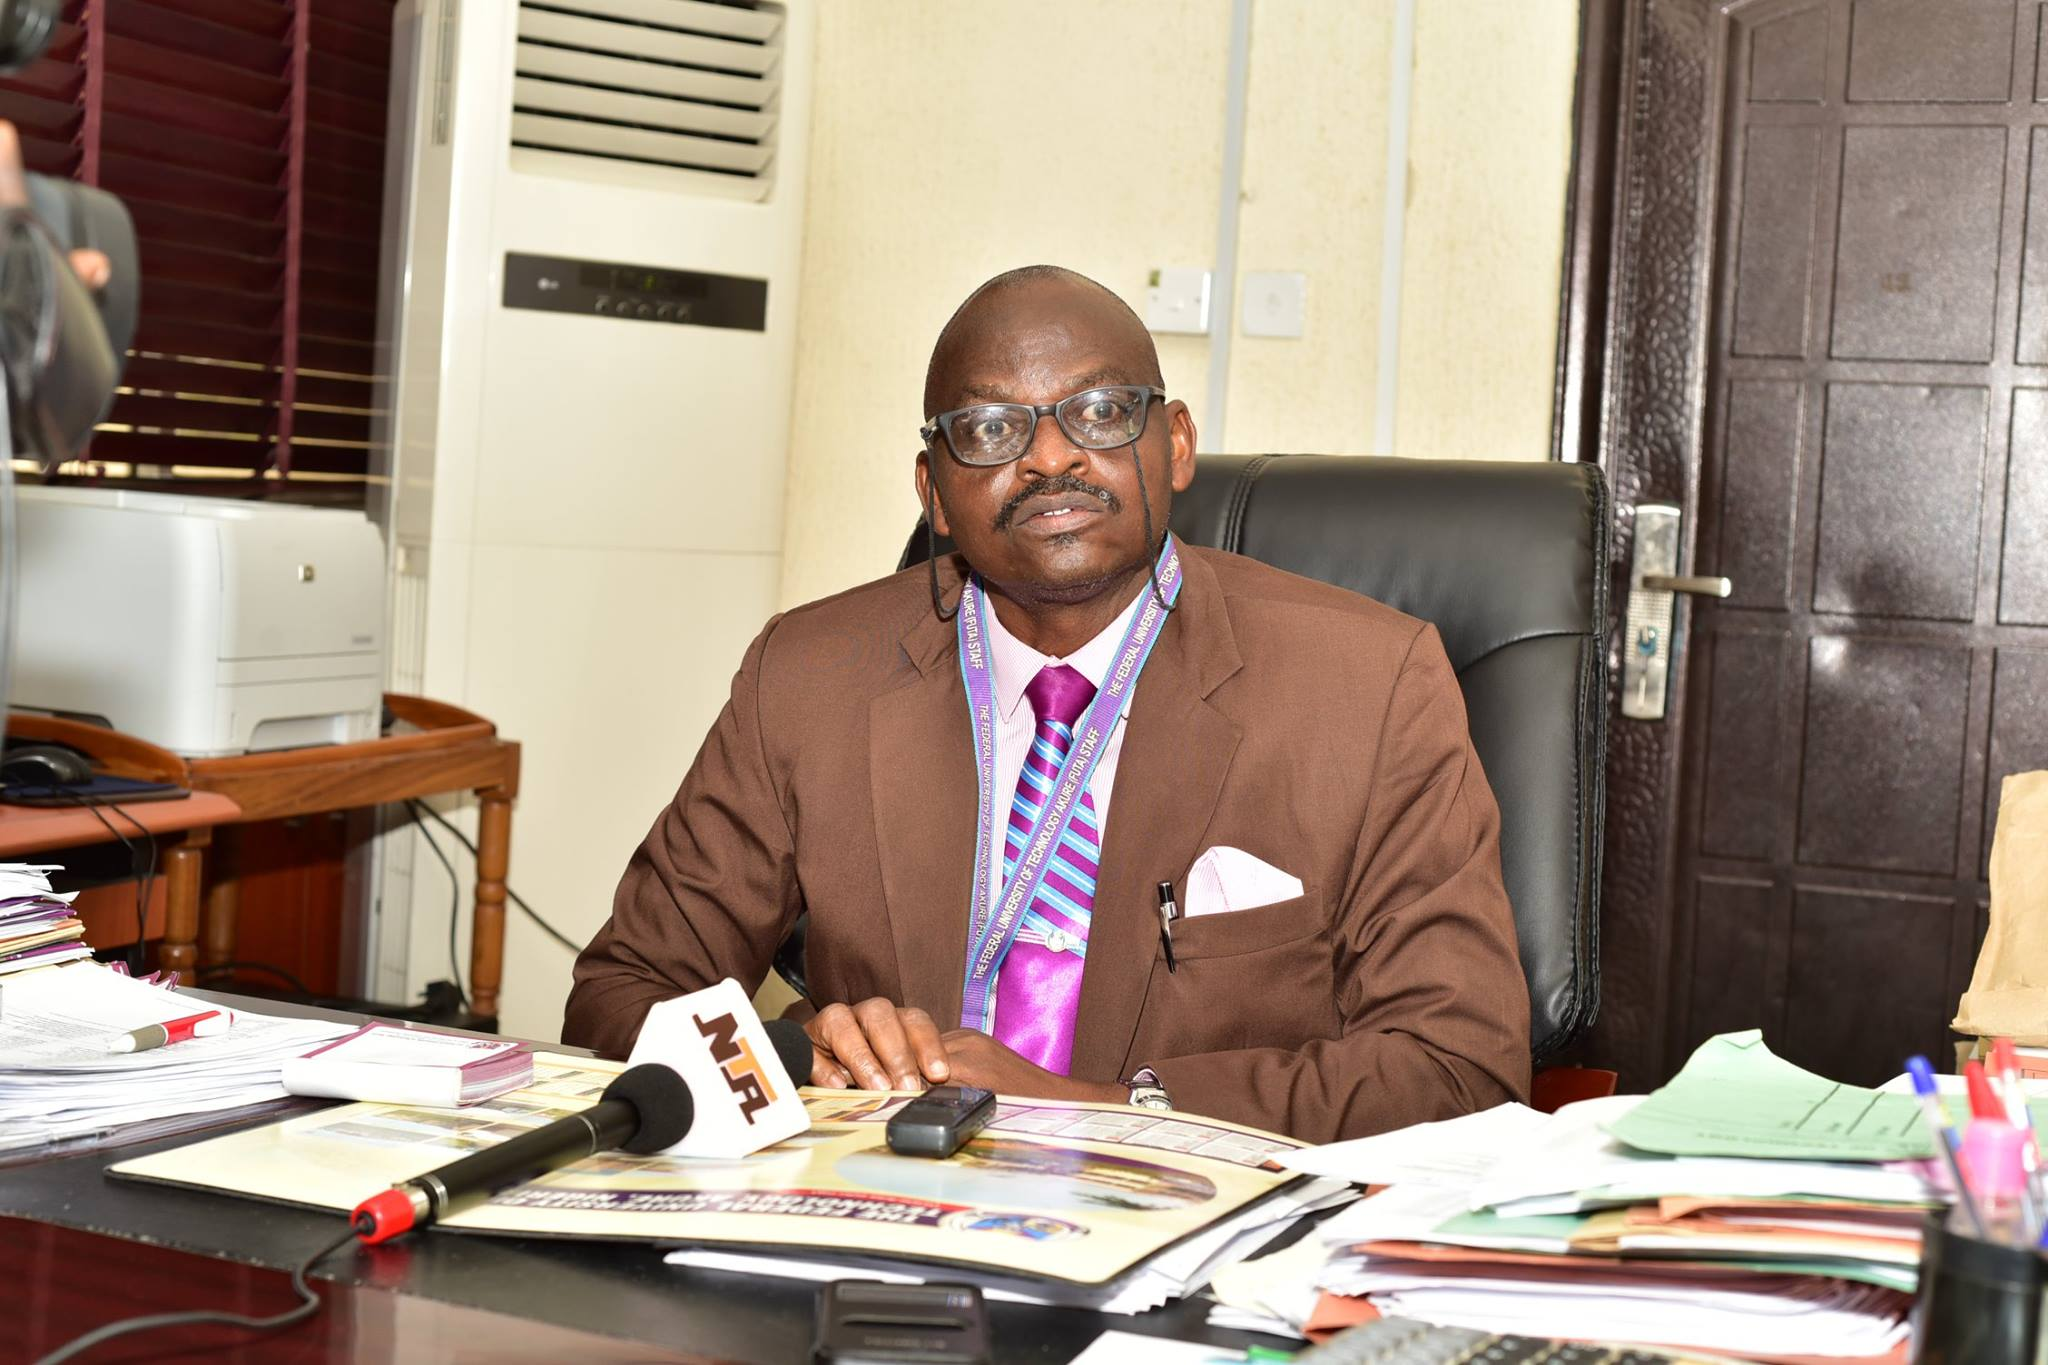 13,500 candidates vie for 3,500 slots as FUTA conducts post UTME screening